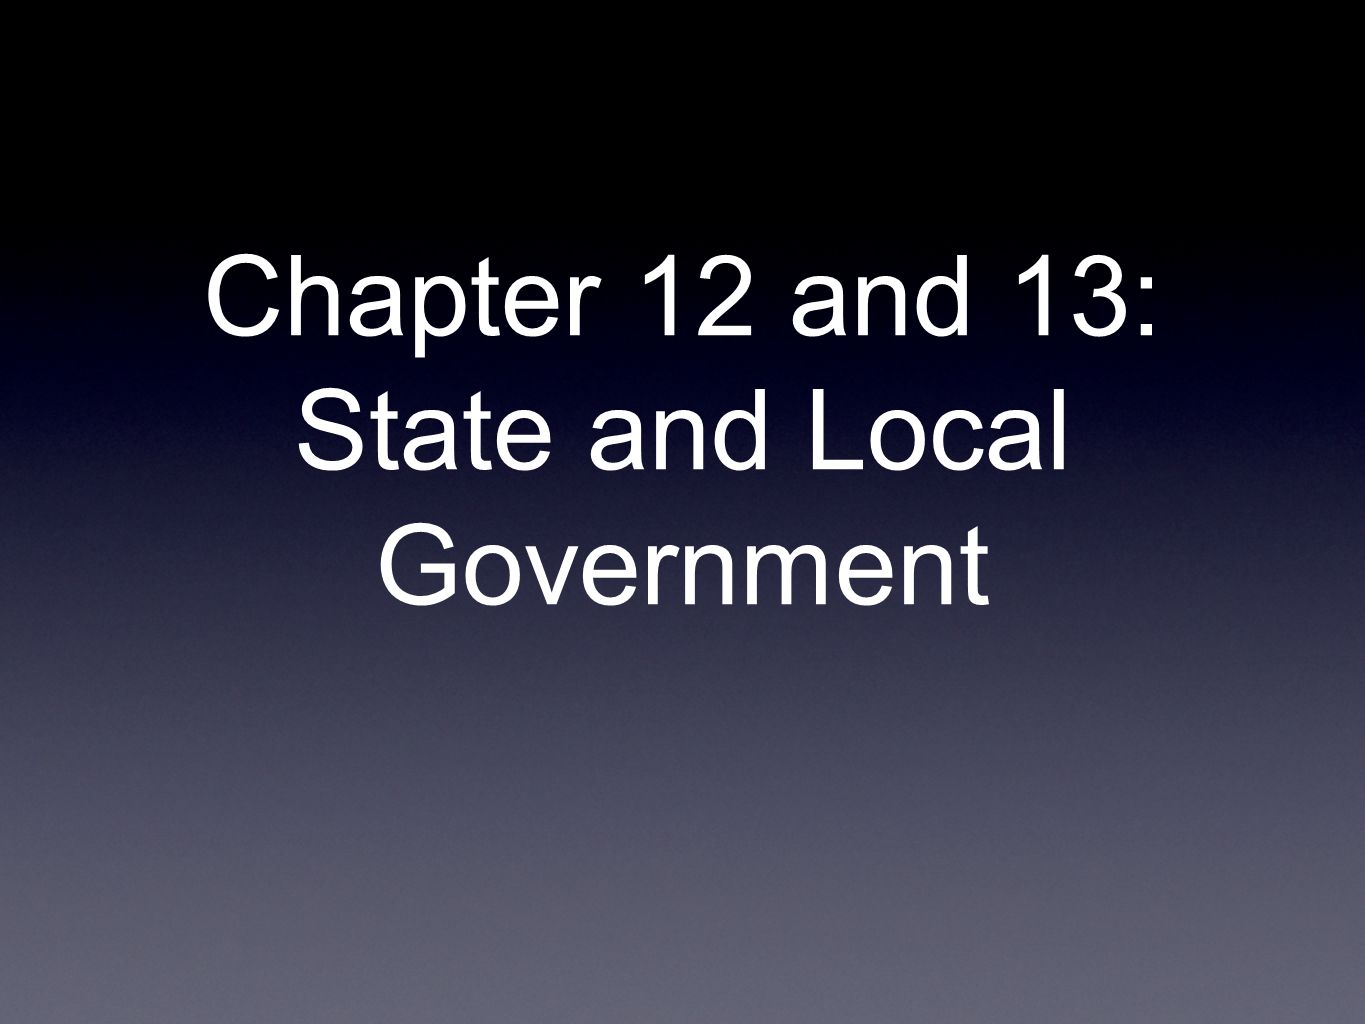 Chapter 12 and 13: State and Local Government